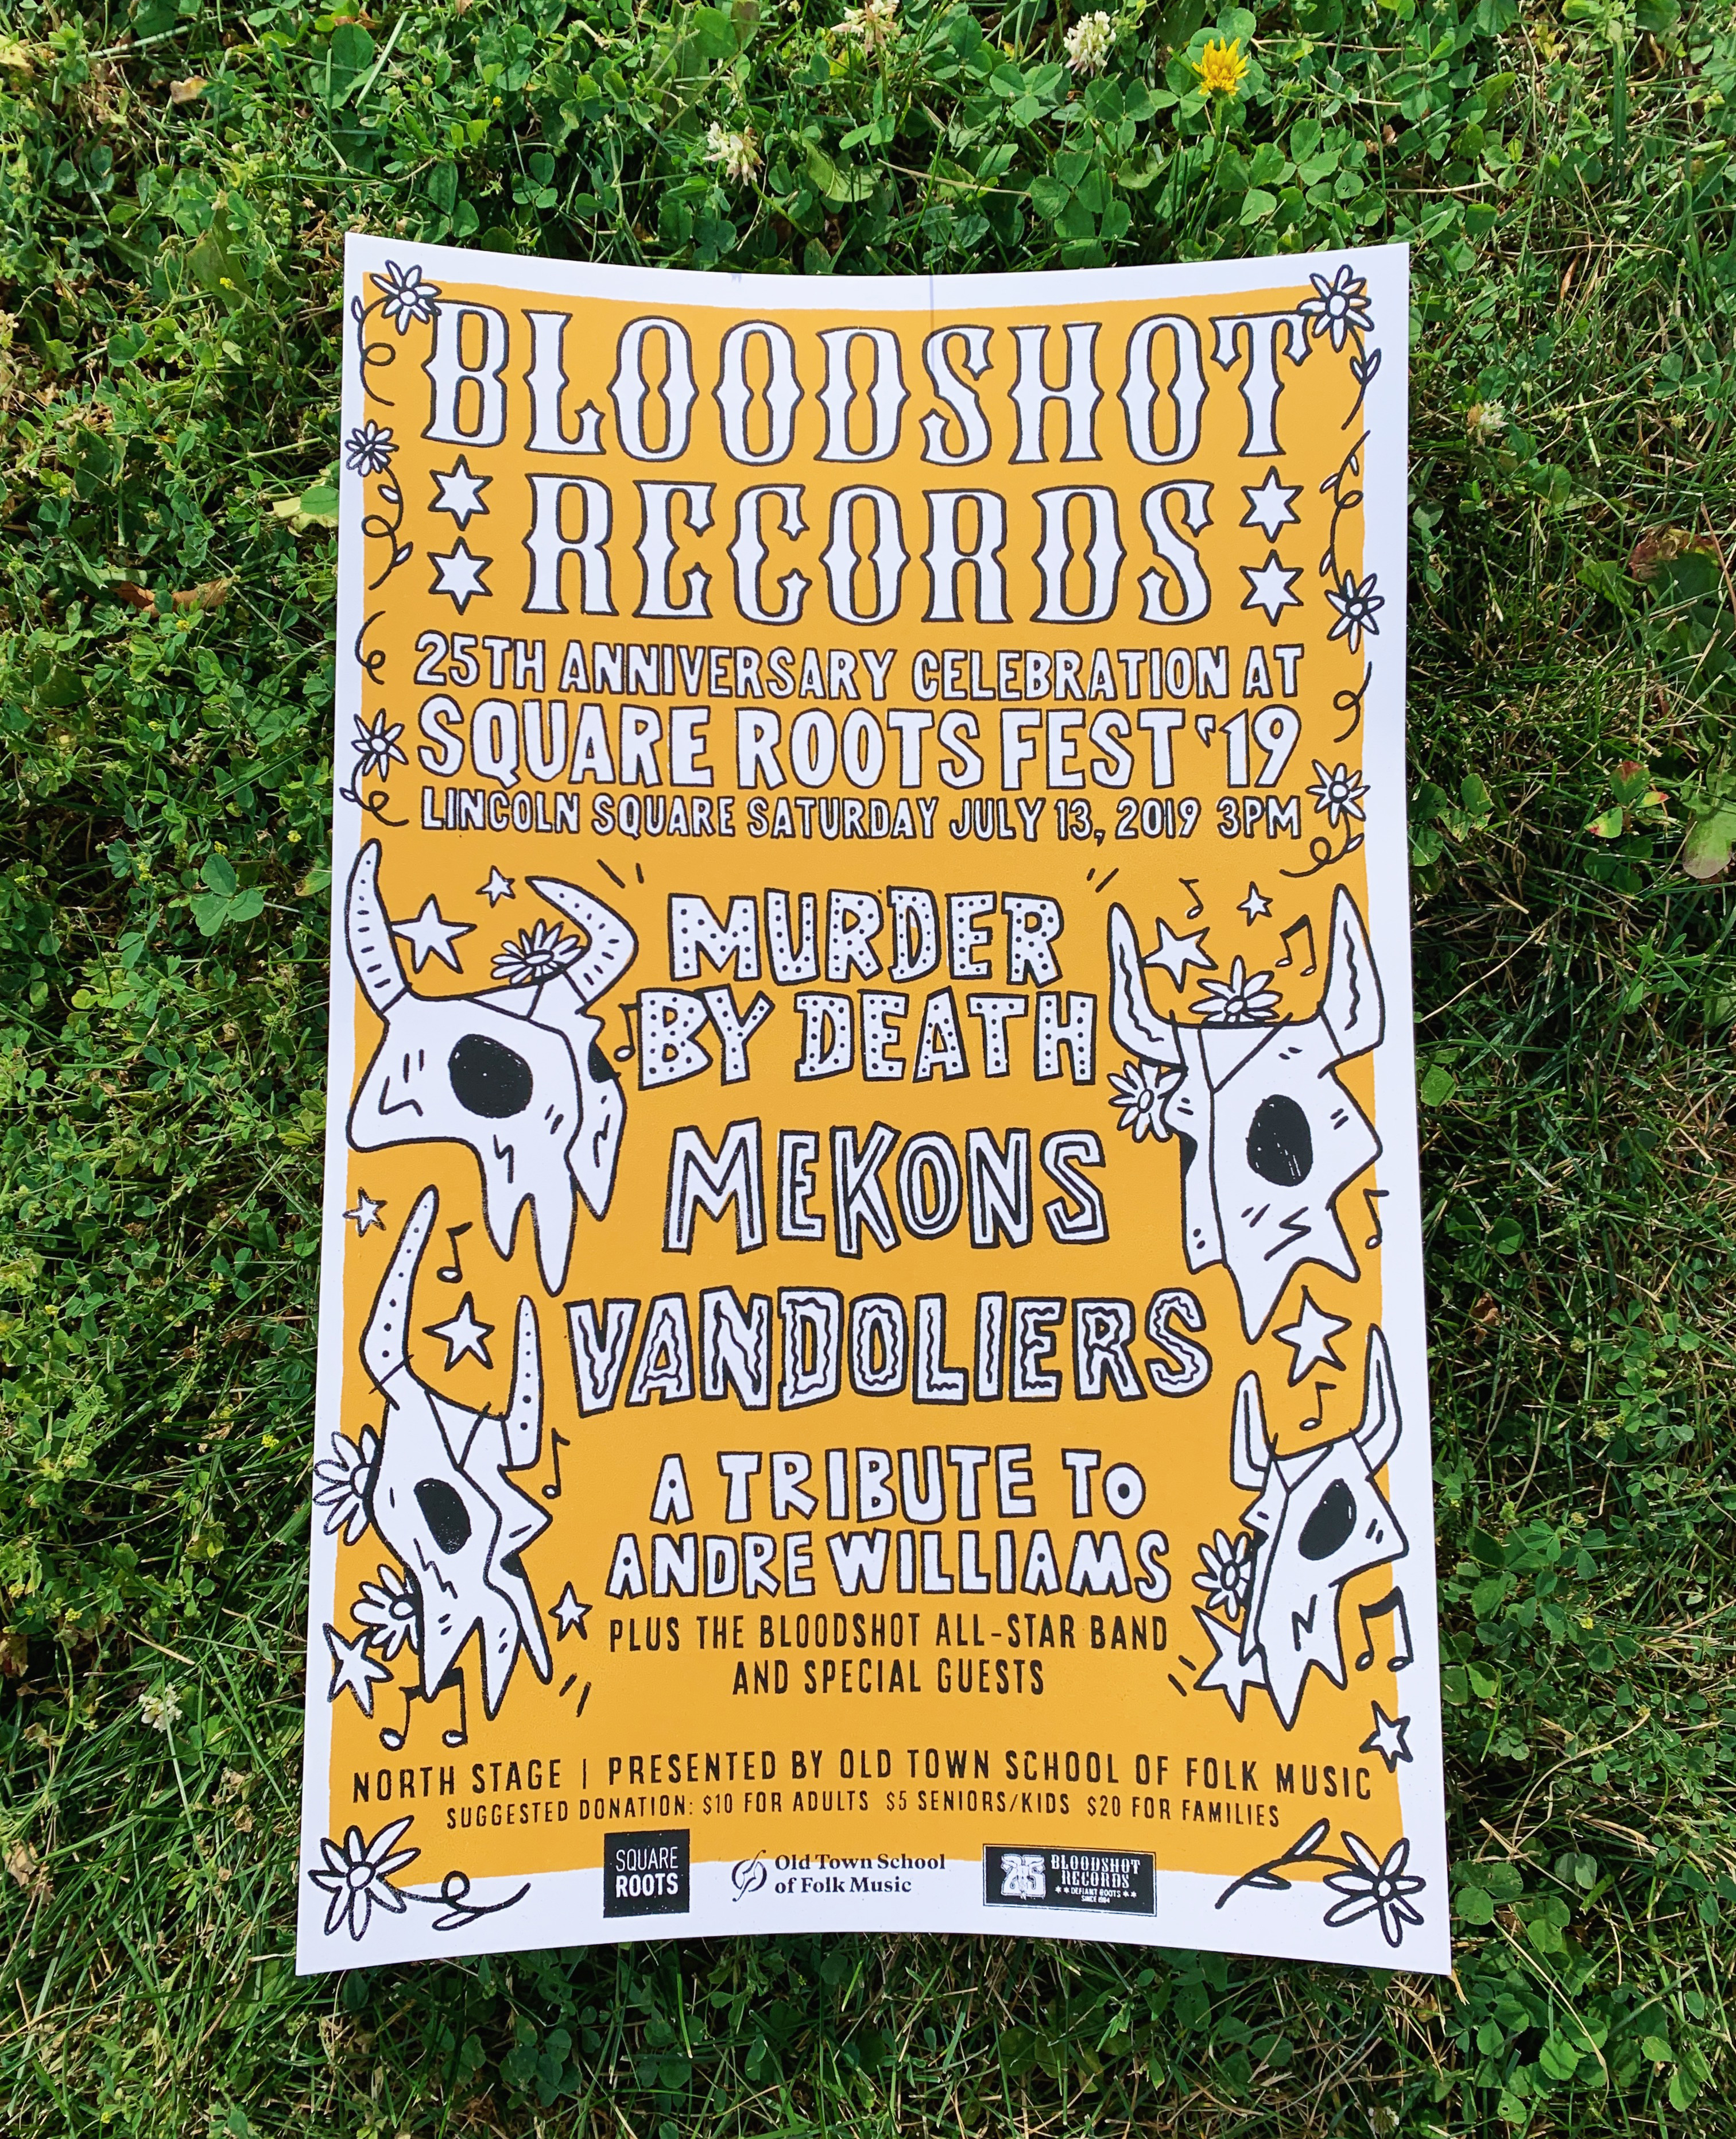 Bloodshot 25th Anniversary celebration at Square Roots Fest poster